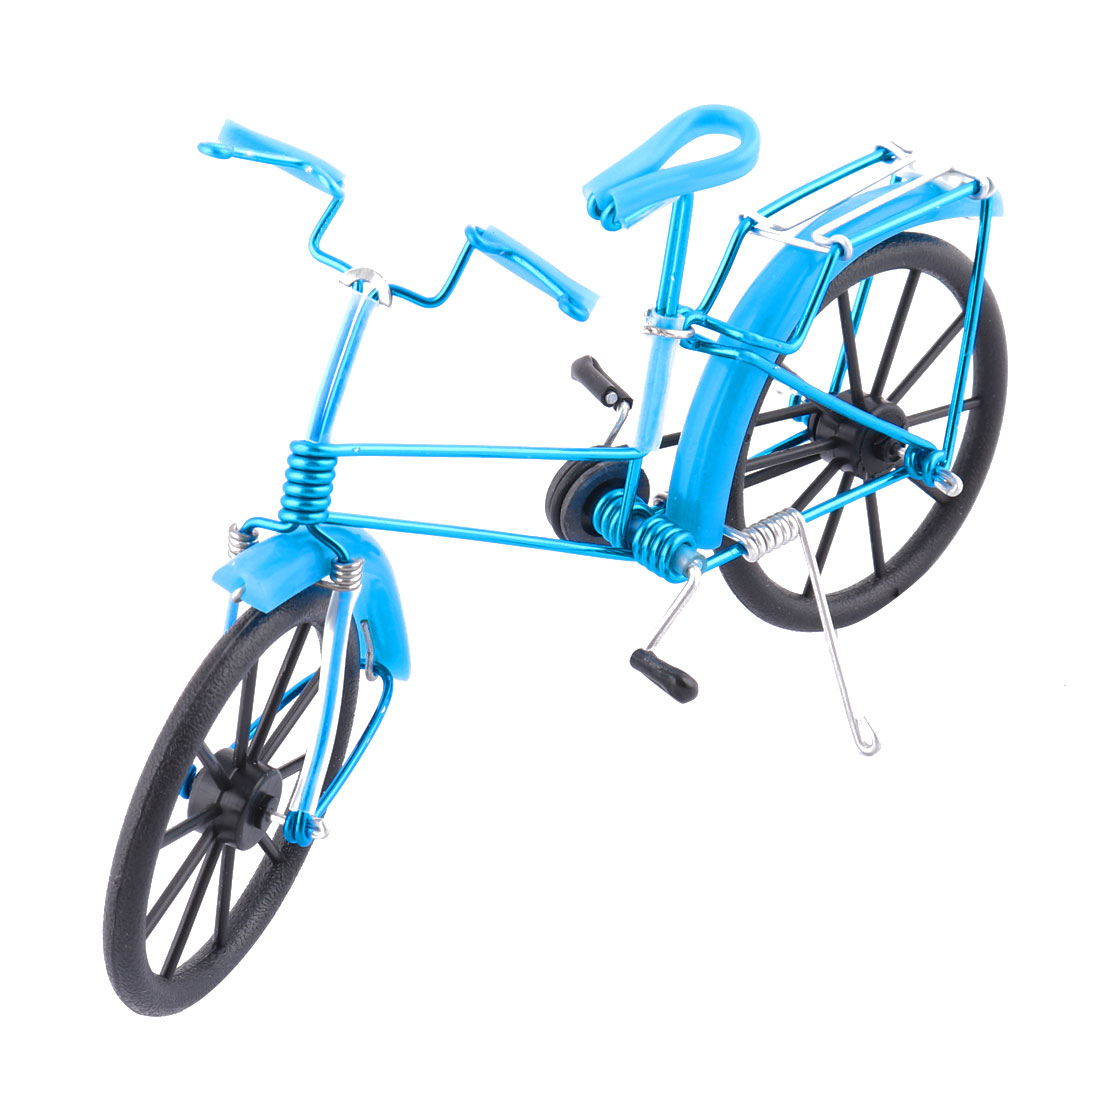 Aluminium Alloy Vintage Style Table Decor Handmade Toy Gift Bicycle Model Blue